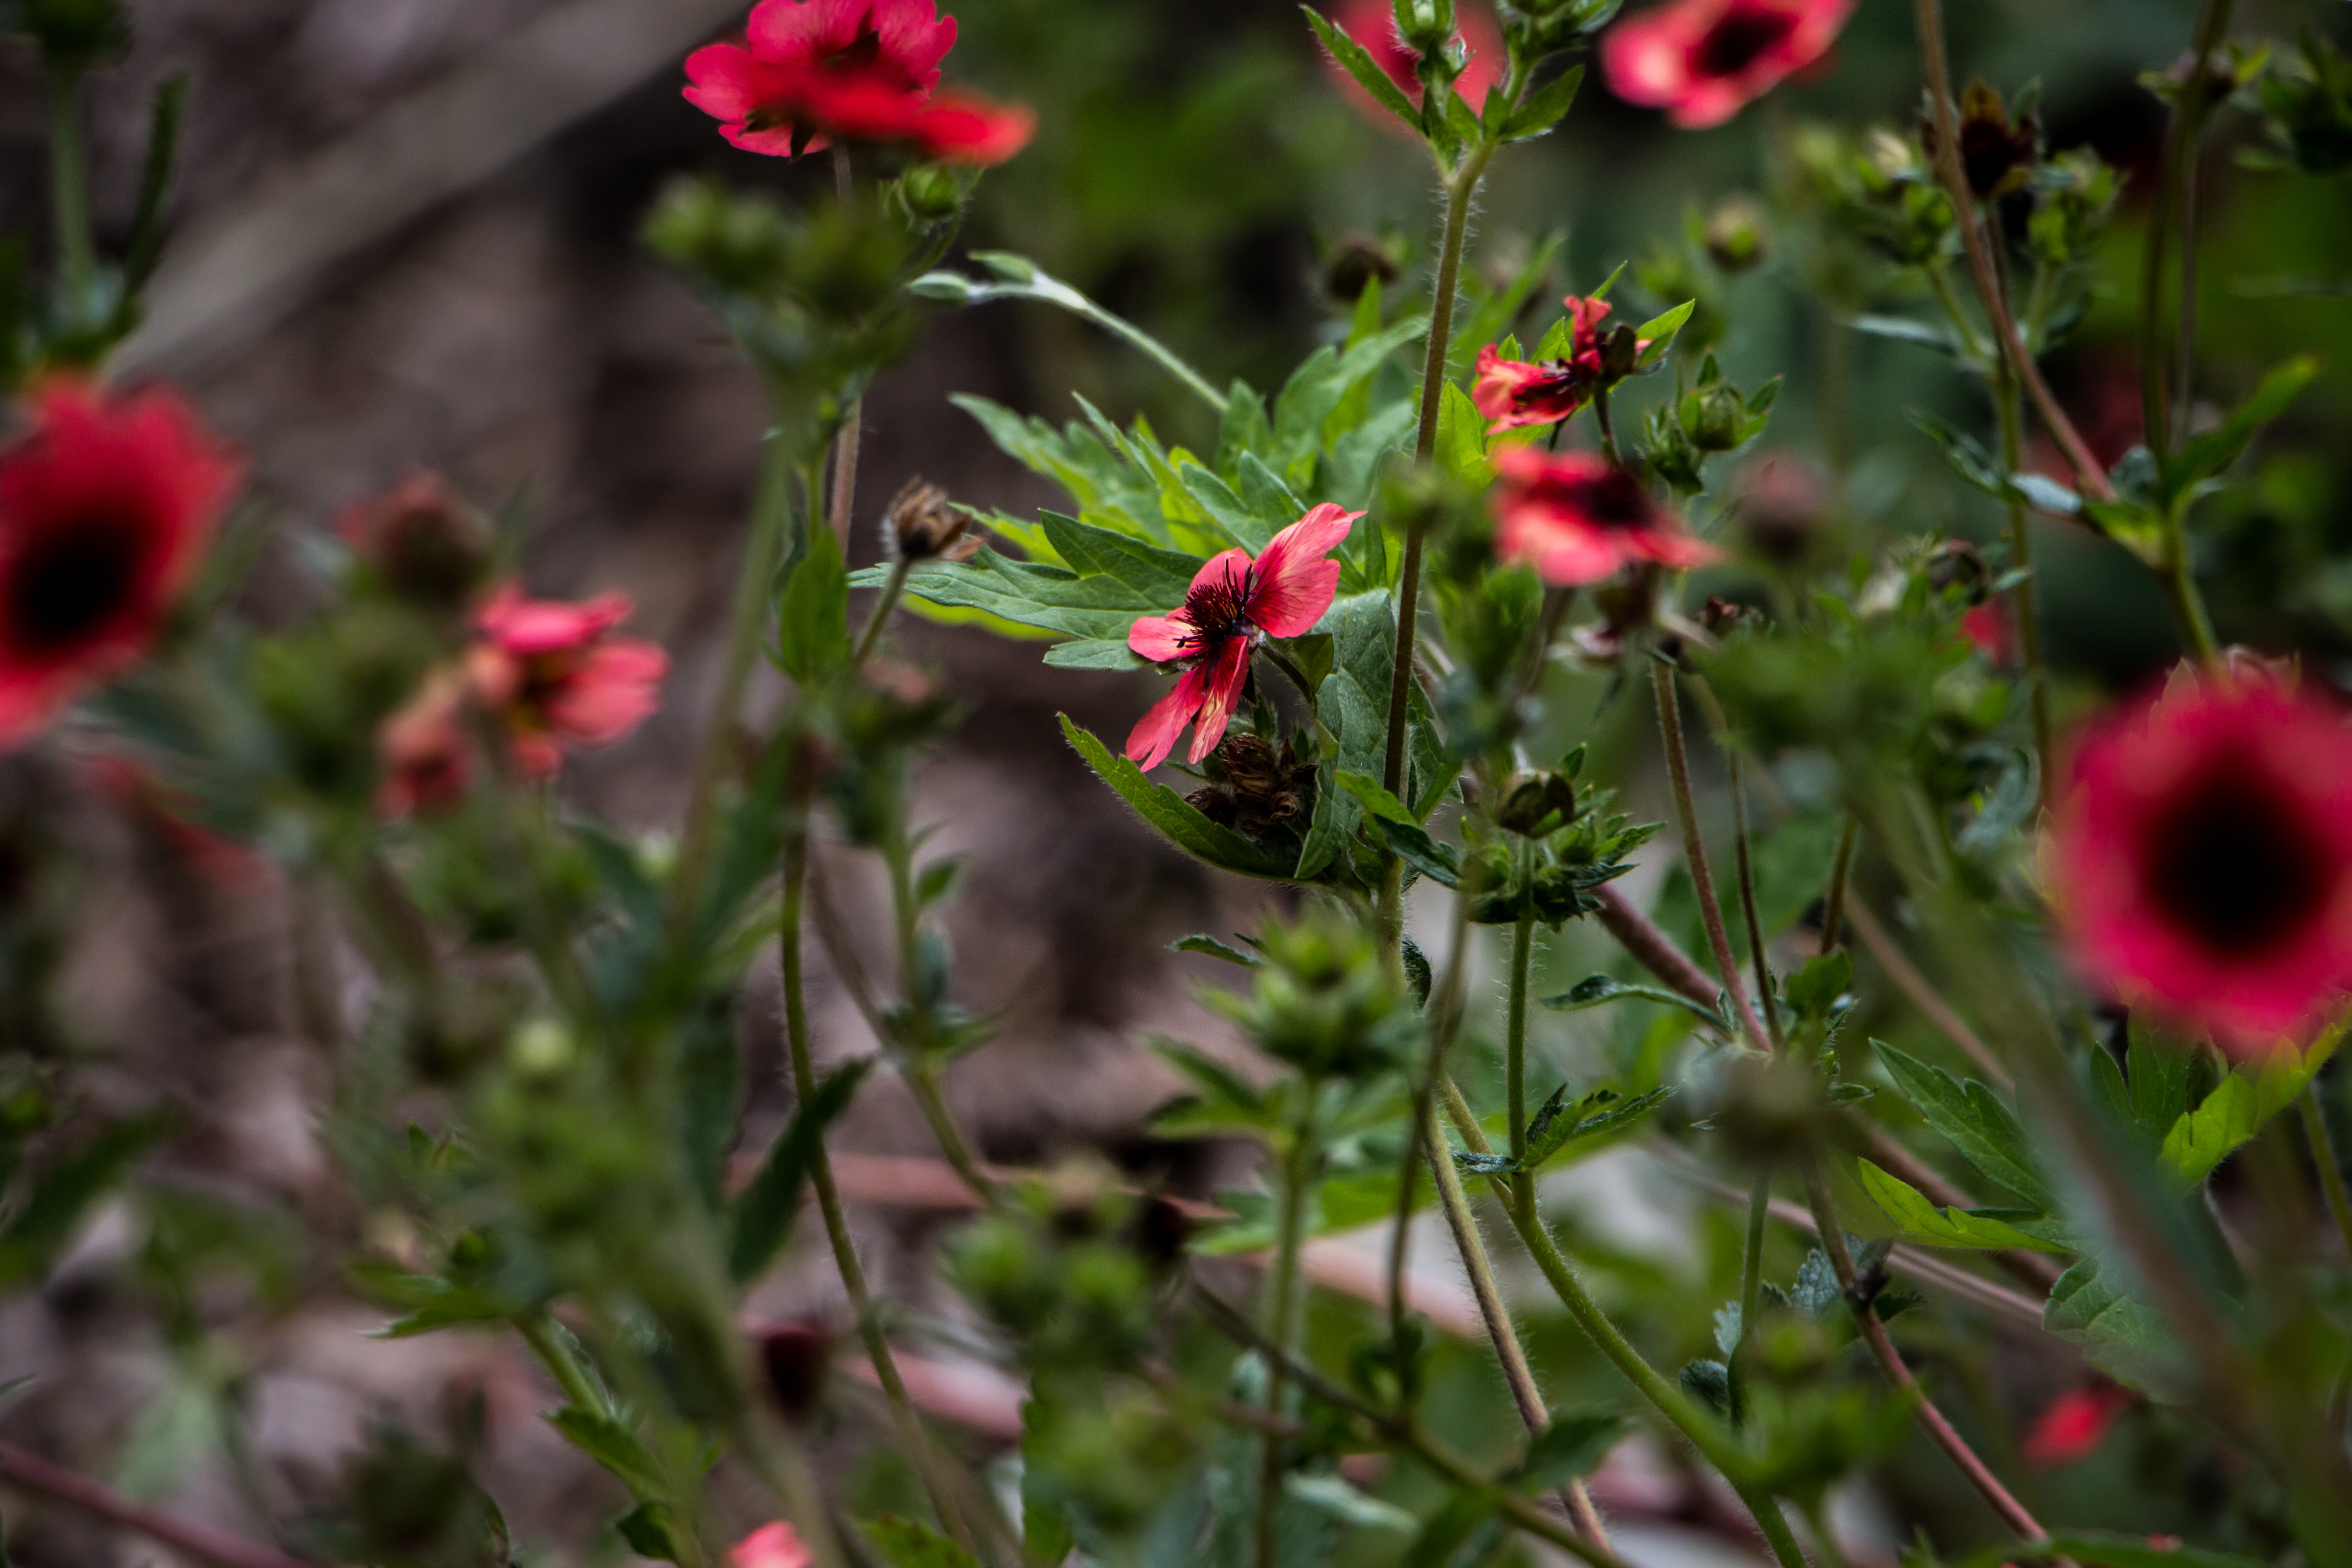 Blood red, Artistic, Beautiful, Blooming, Flowers, HQ Photo